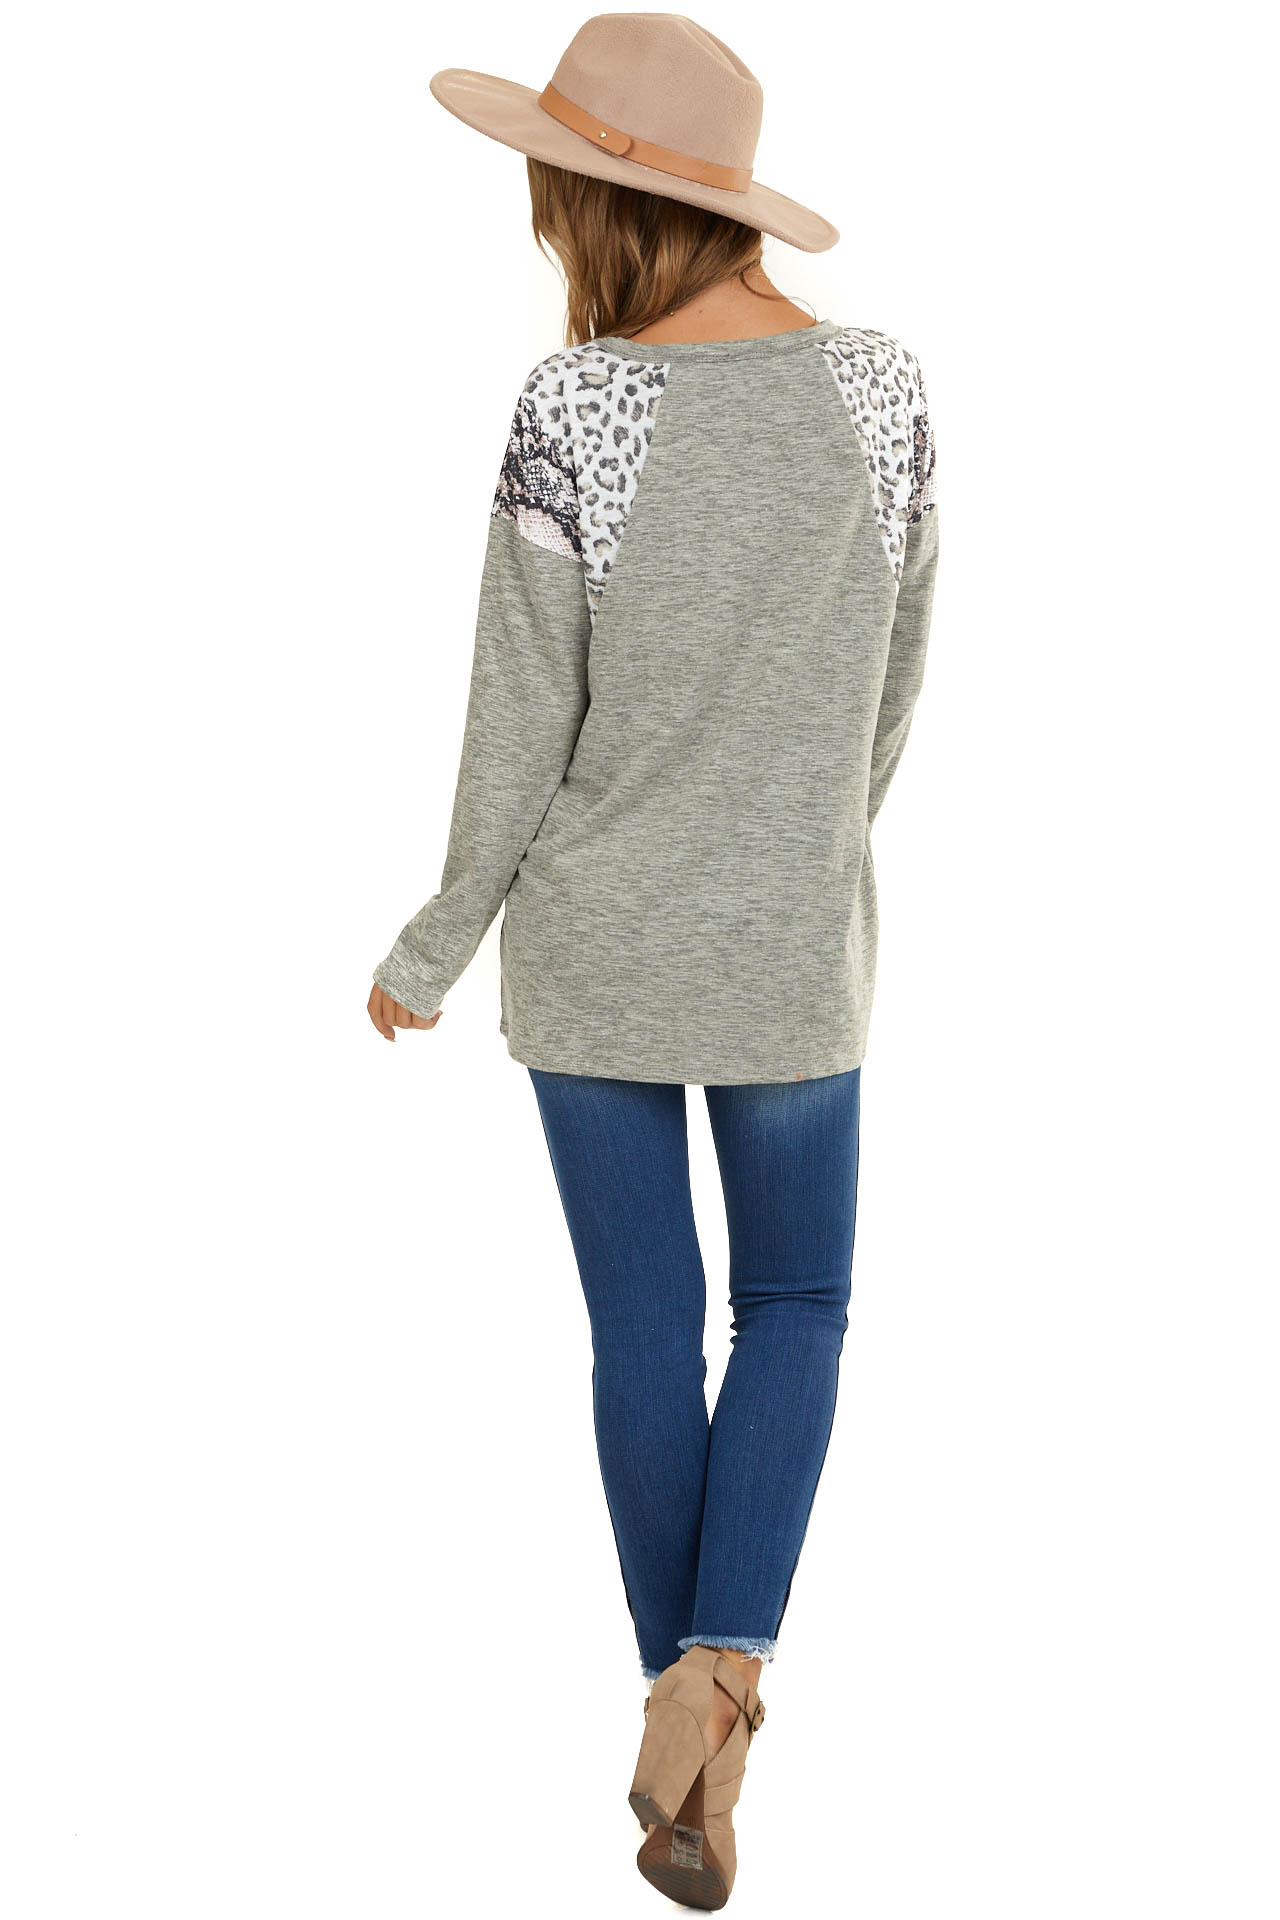 Sage Long Sleeve Top with Leopard and Snakeskin Print